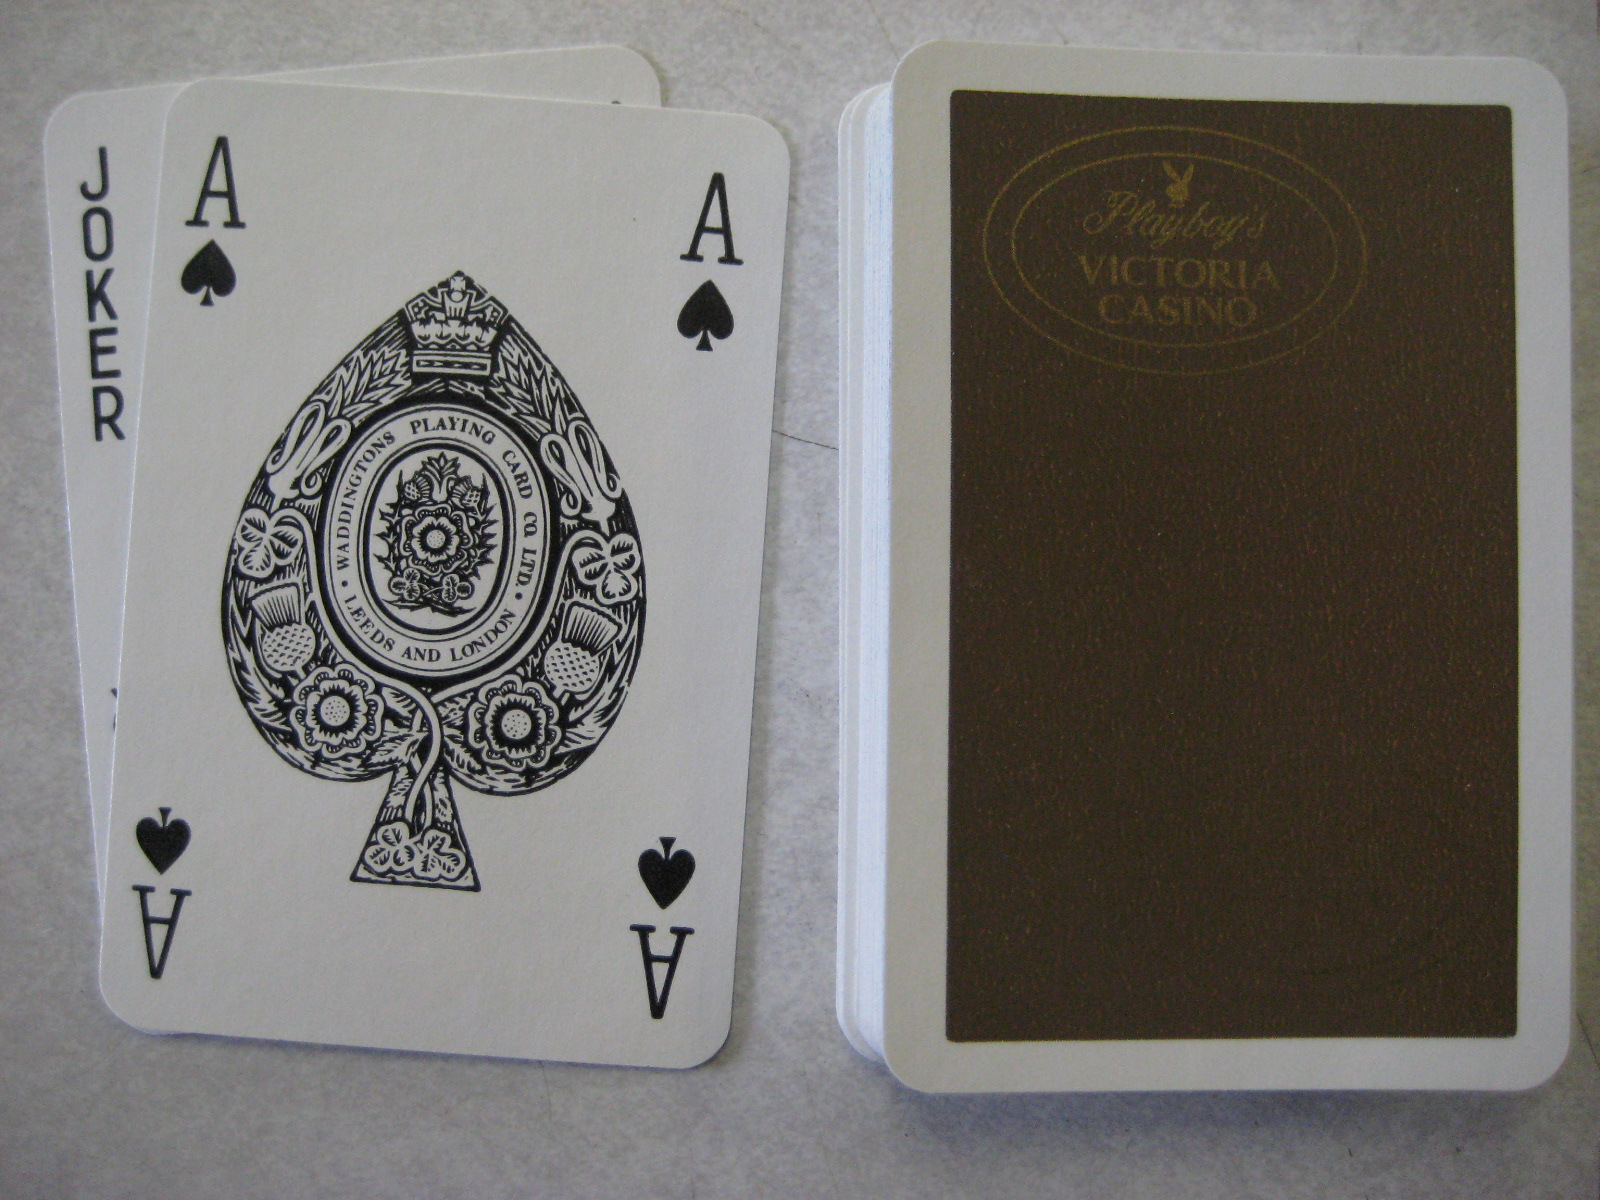 Playboy's Victoria Casino Brown Deck of Playing Cards